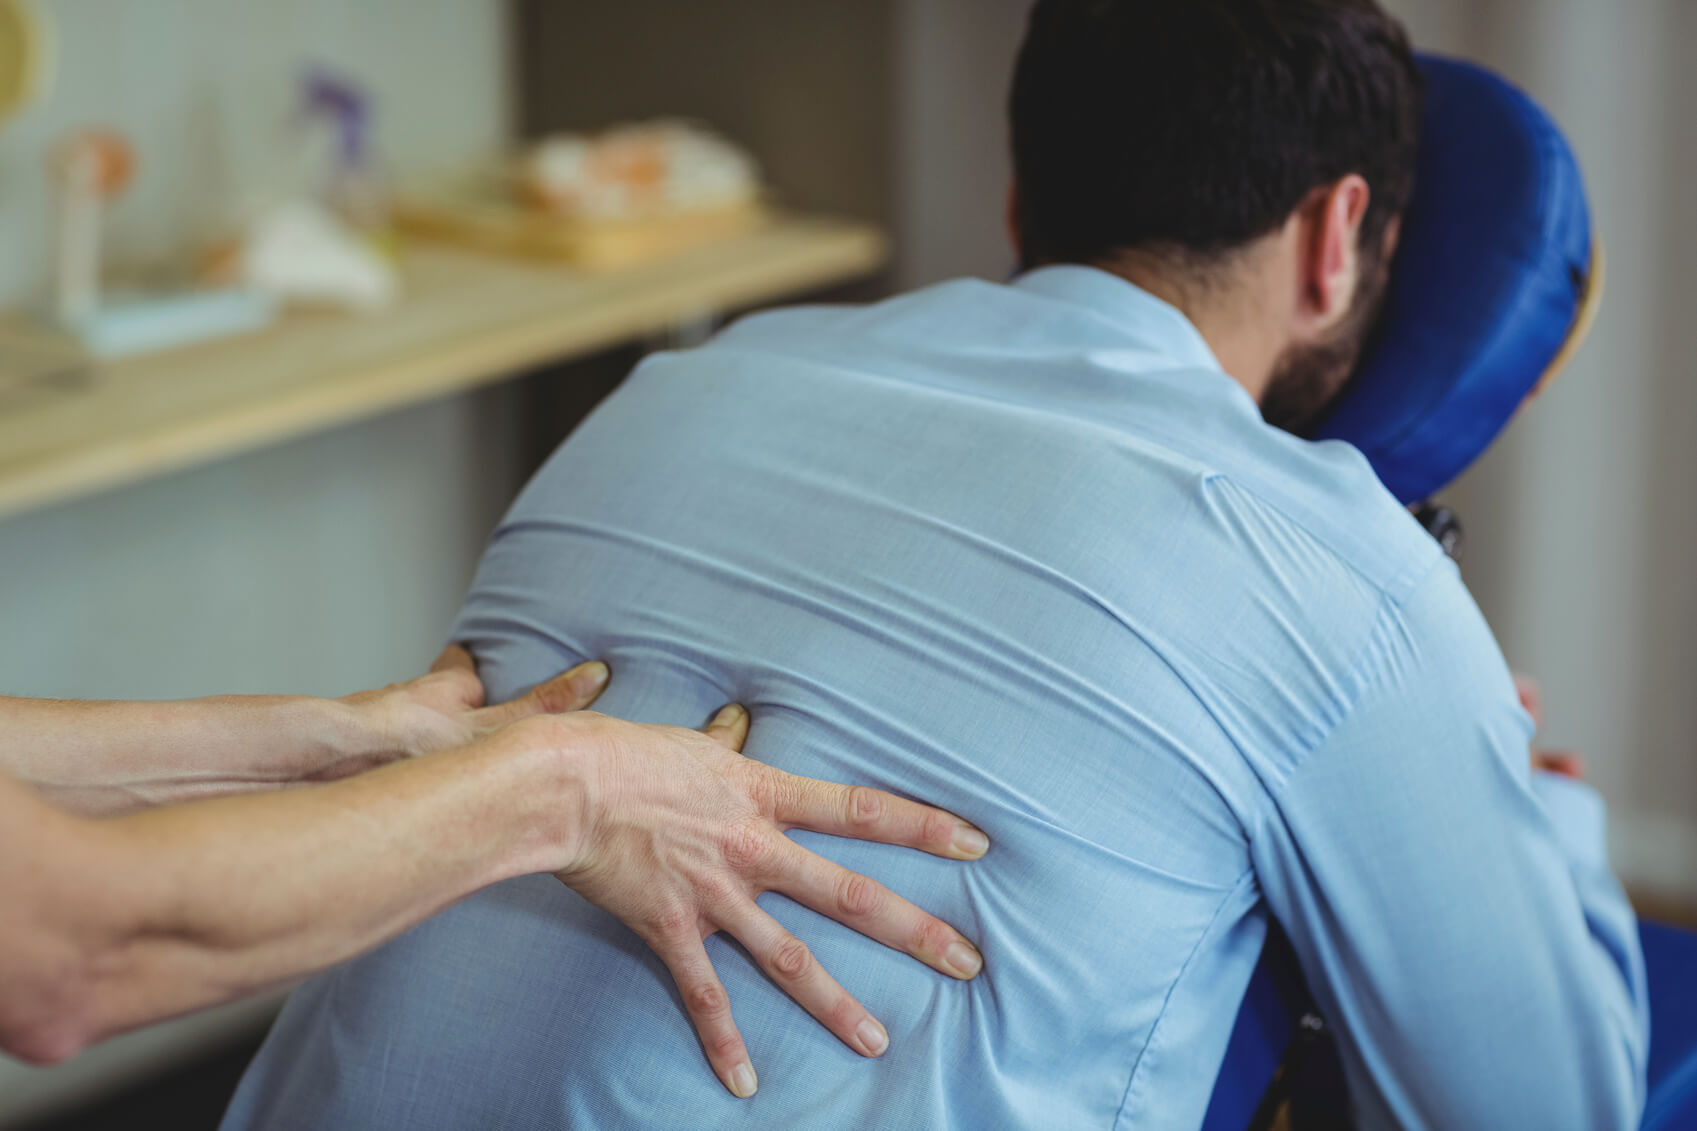 A man receiving back massage treatment following a back injury